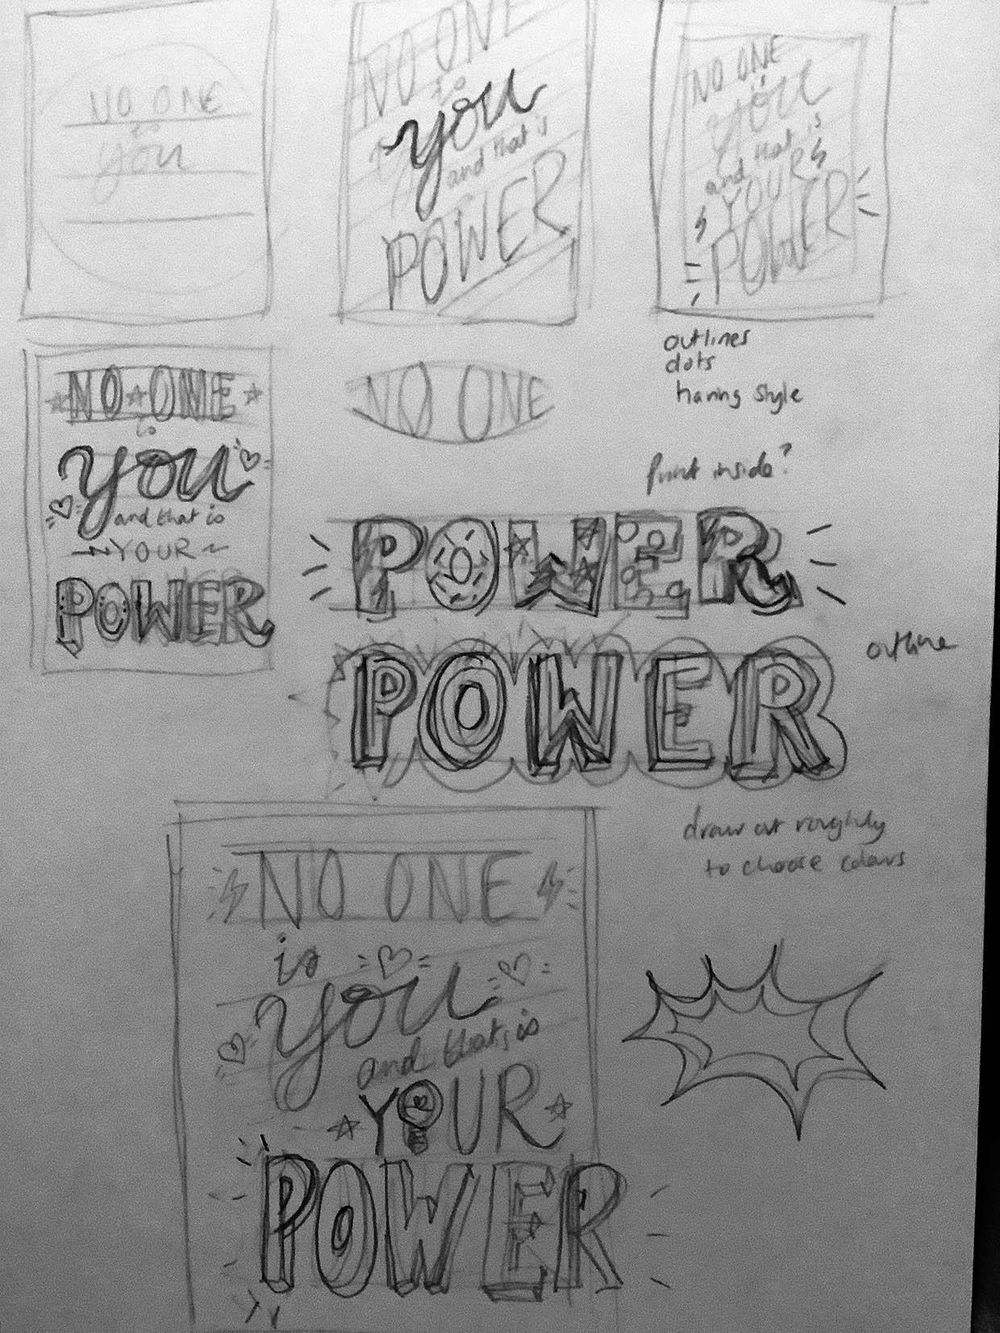 No one is you and that is your power! - image 1 - student project